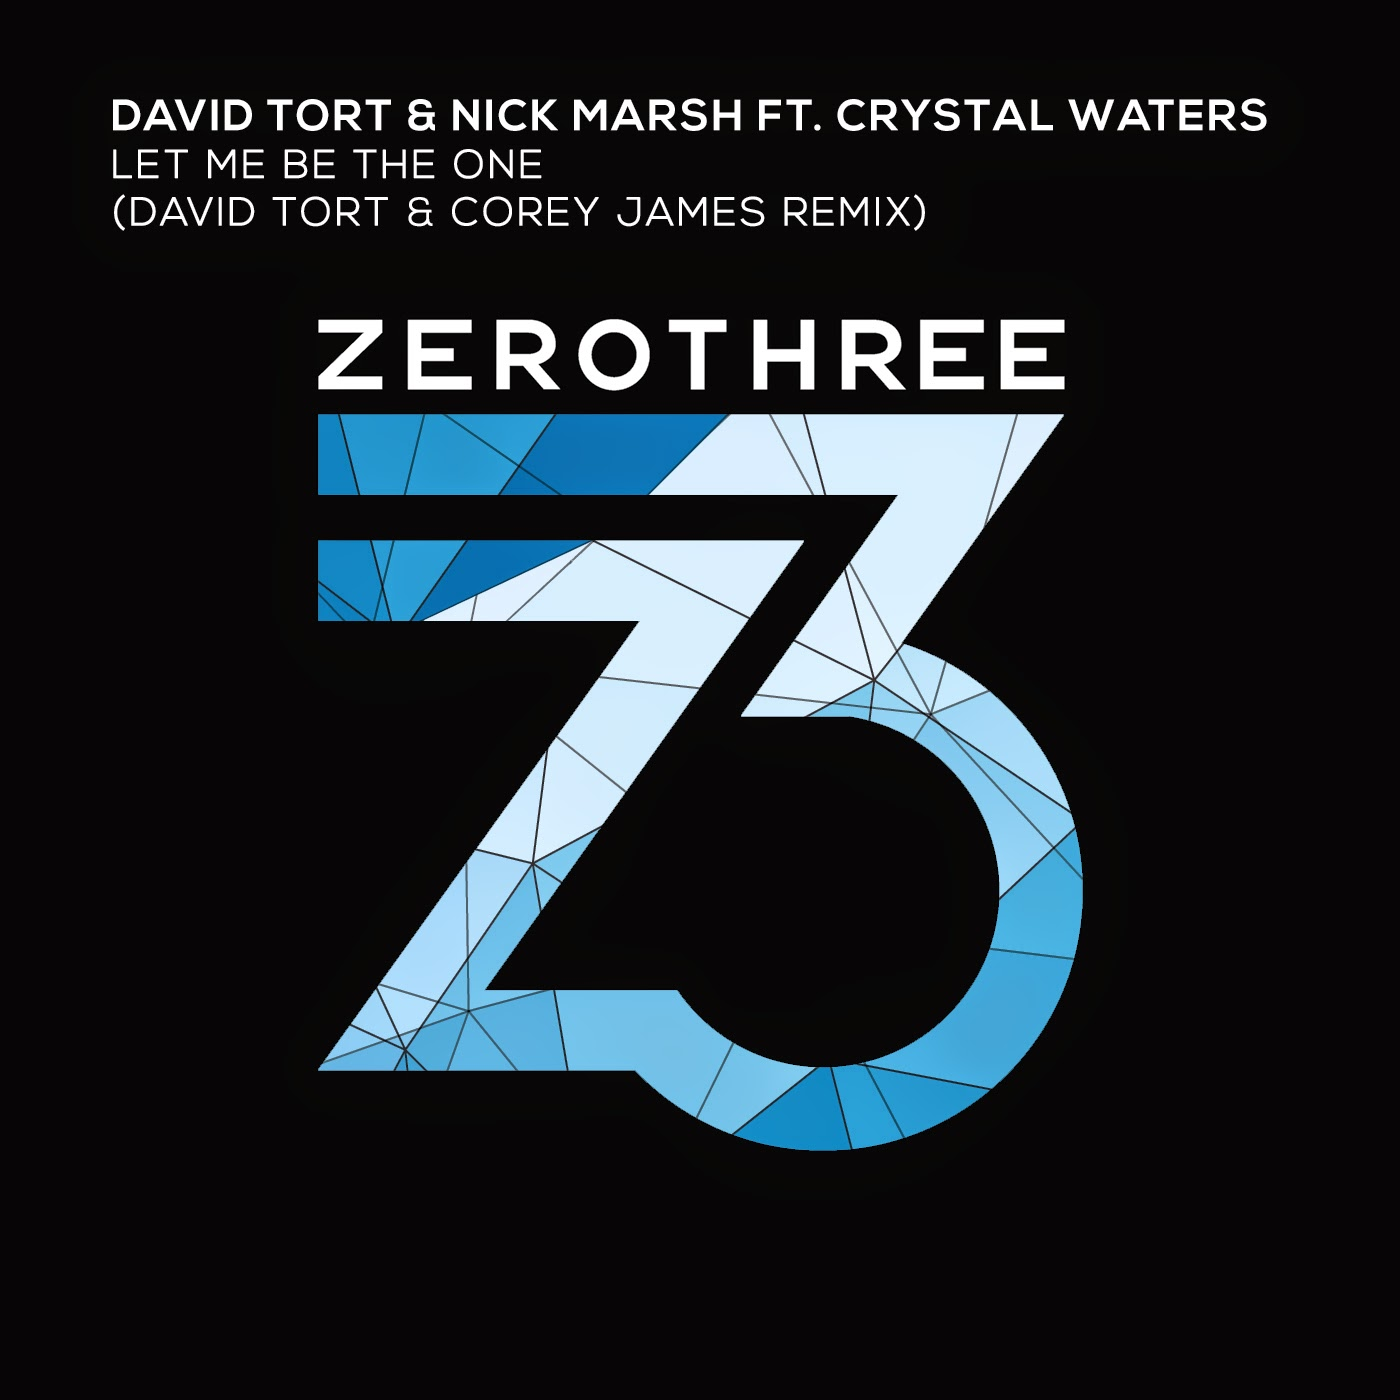 David Tort & Nick Marsh ft. Crystal Waters Let Me Be The